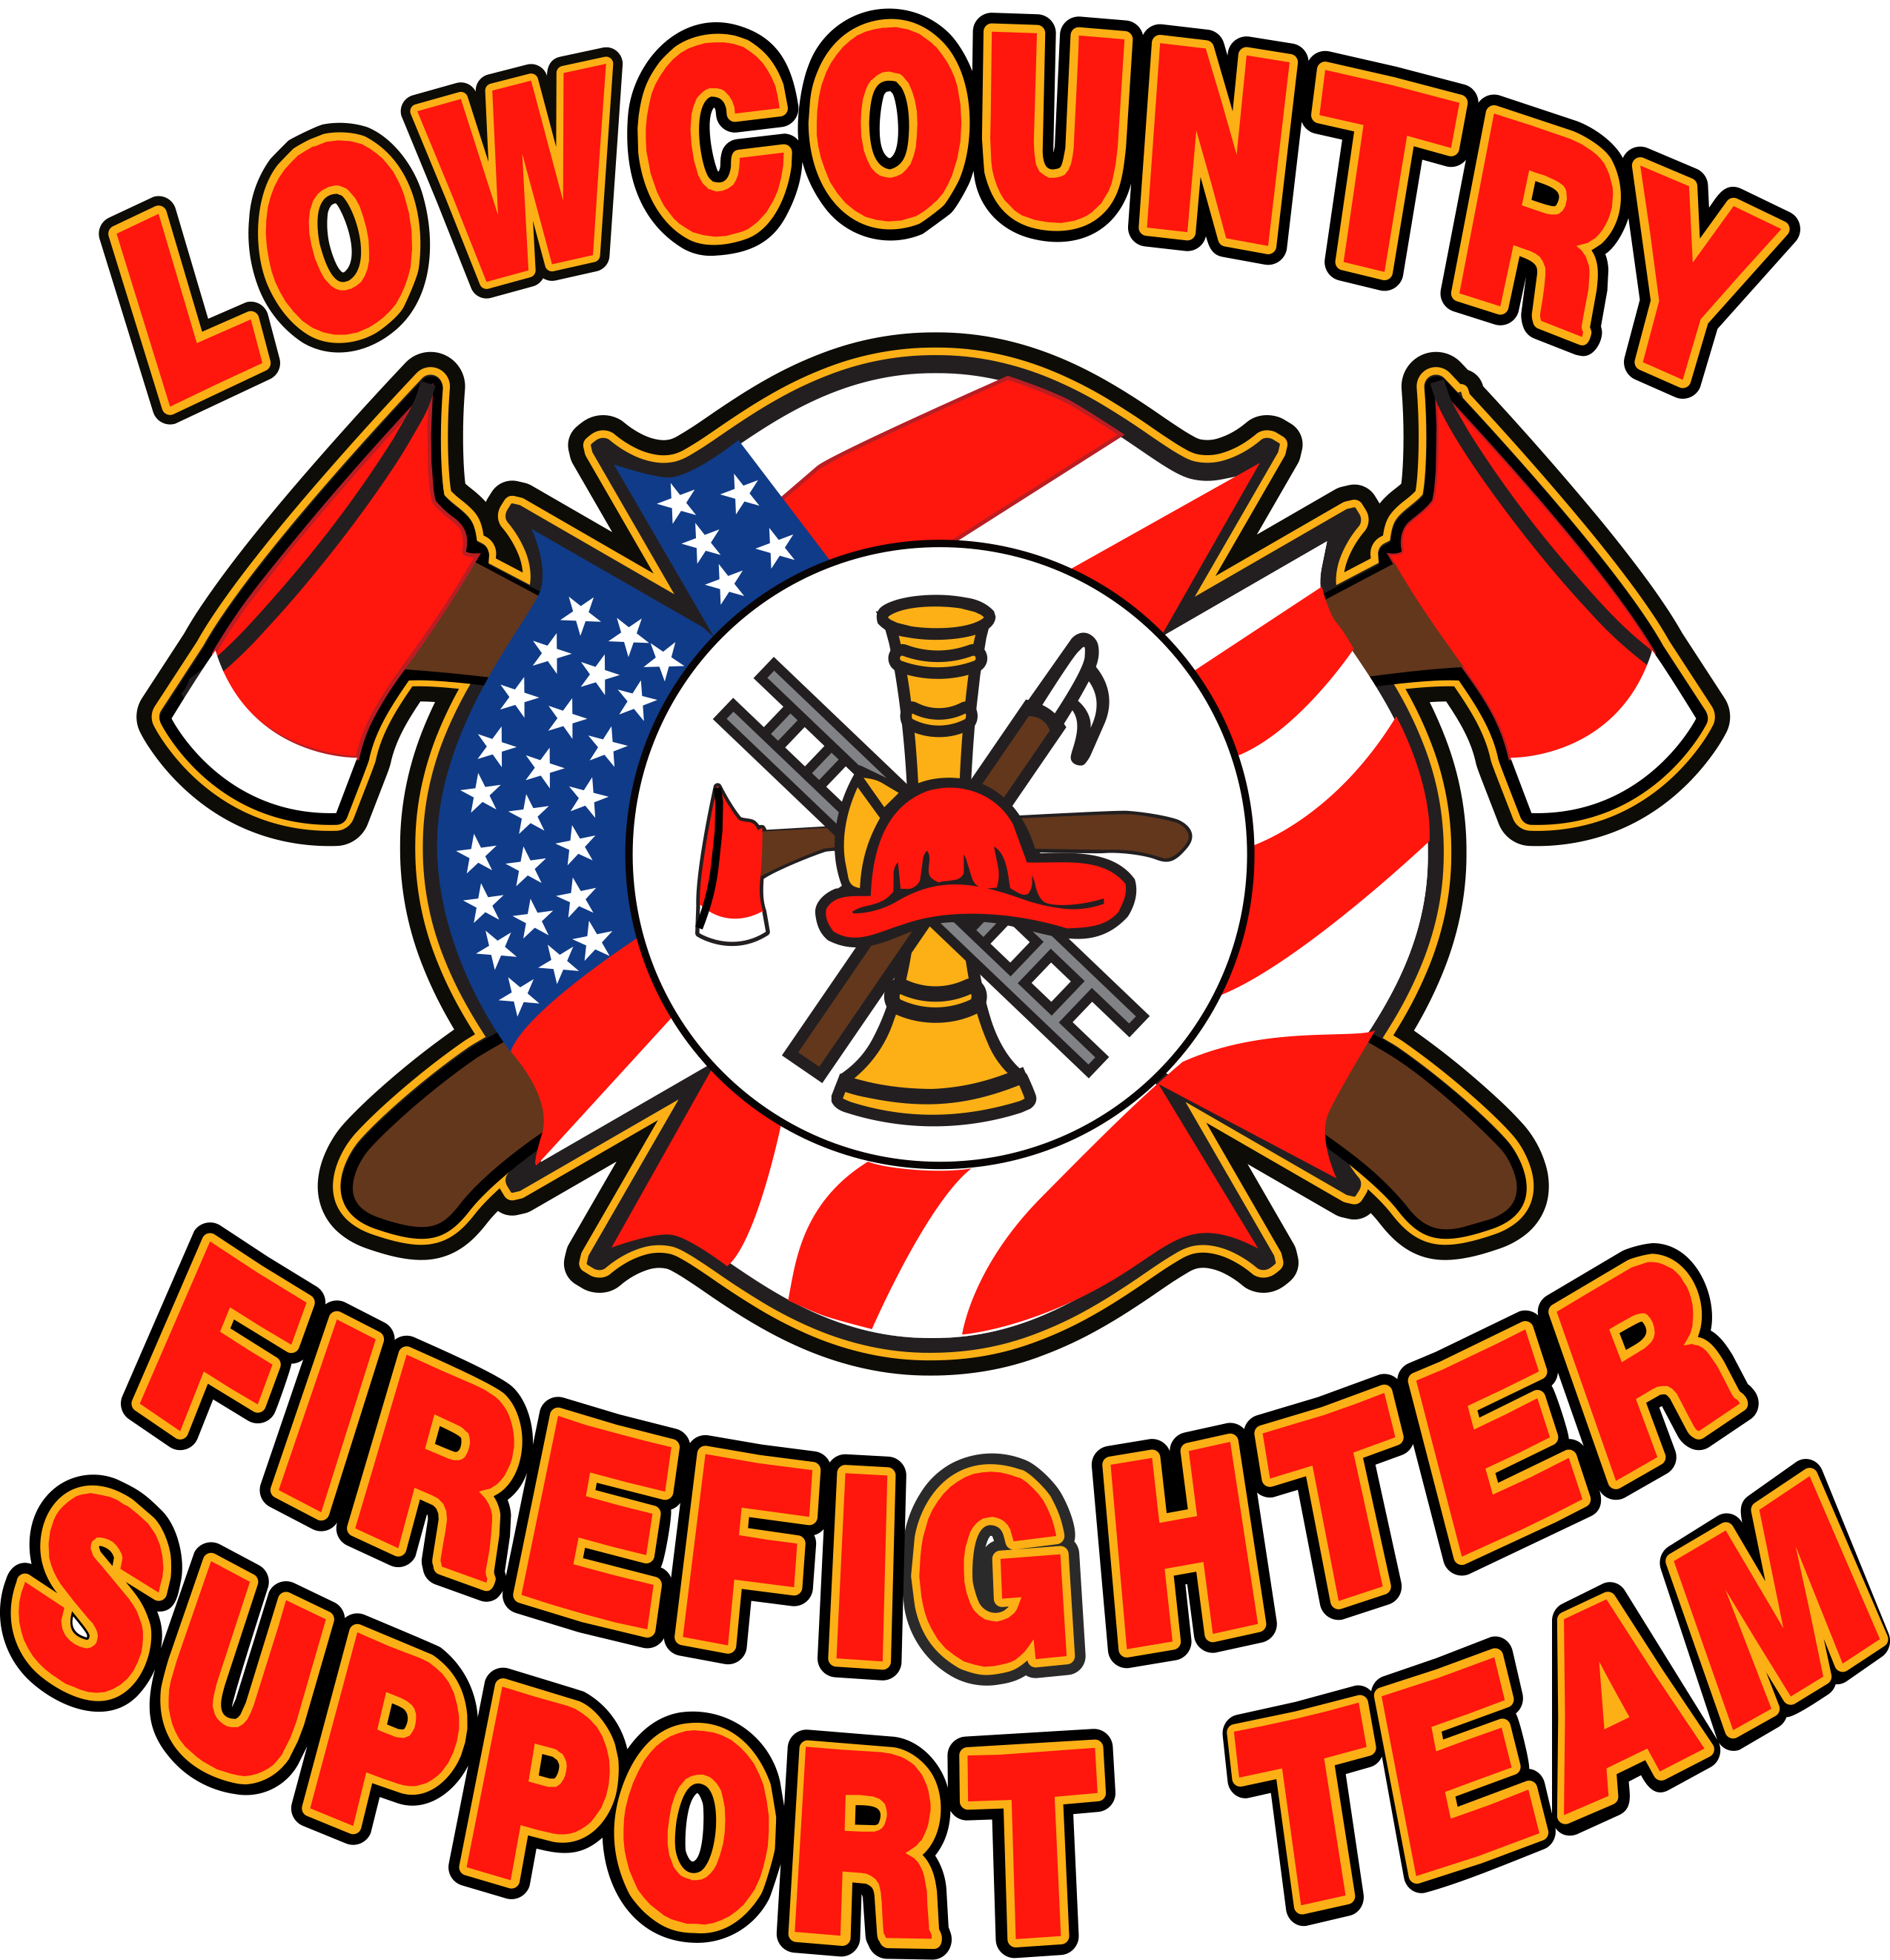 Firefighter clipart firefighter team. Lowcountry support lffstemblempng